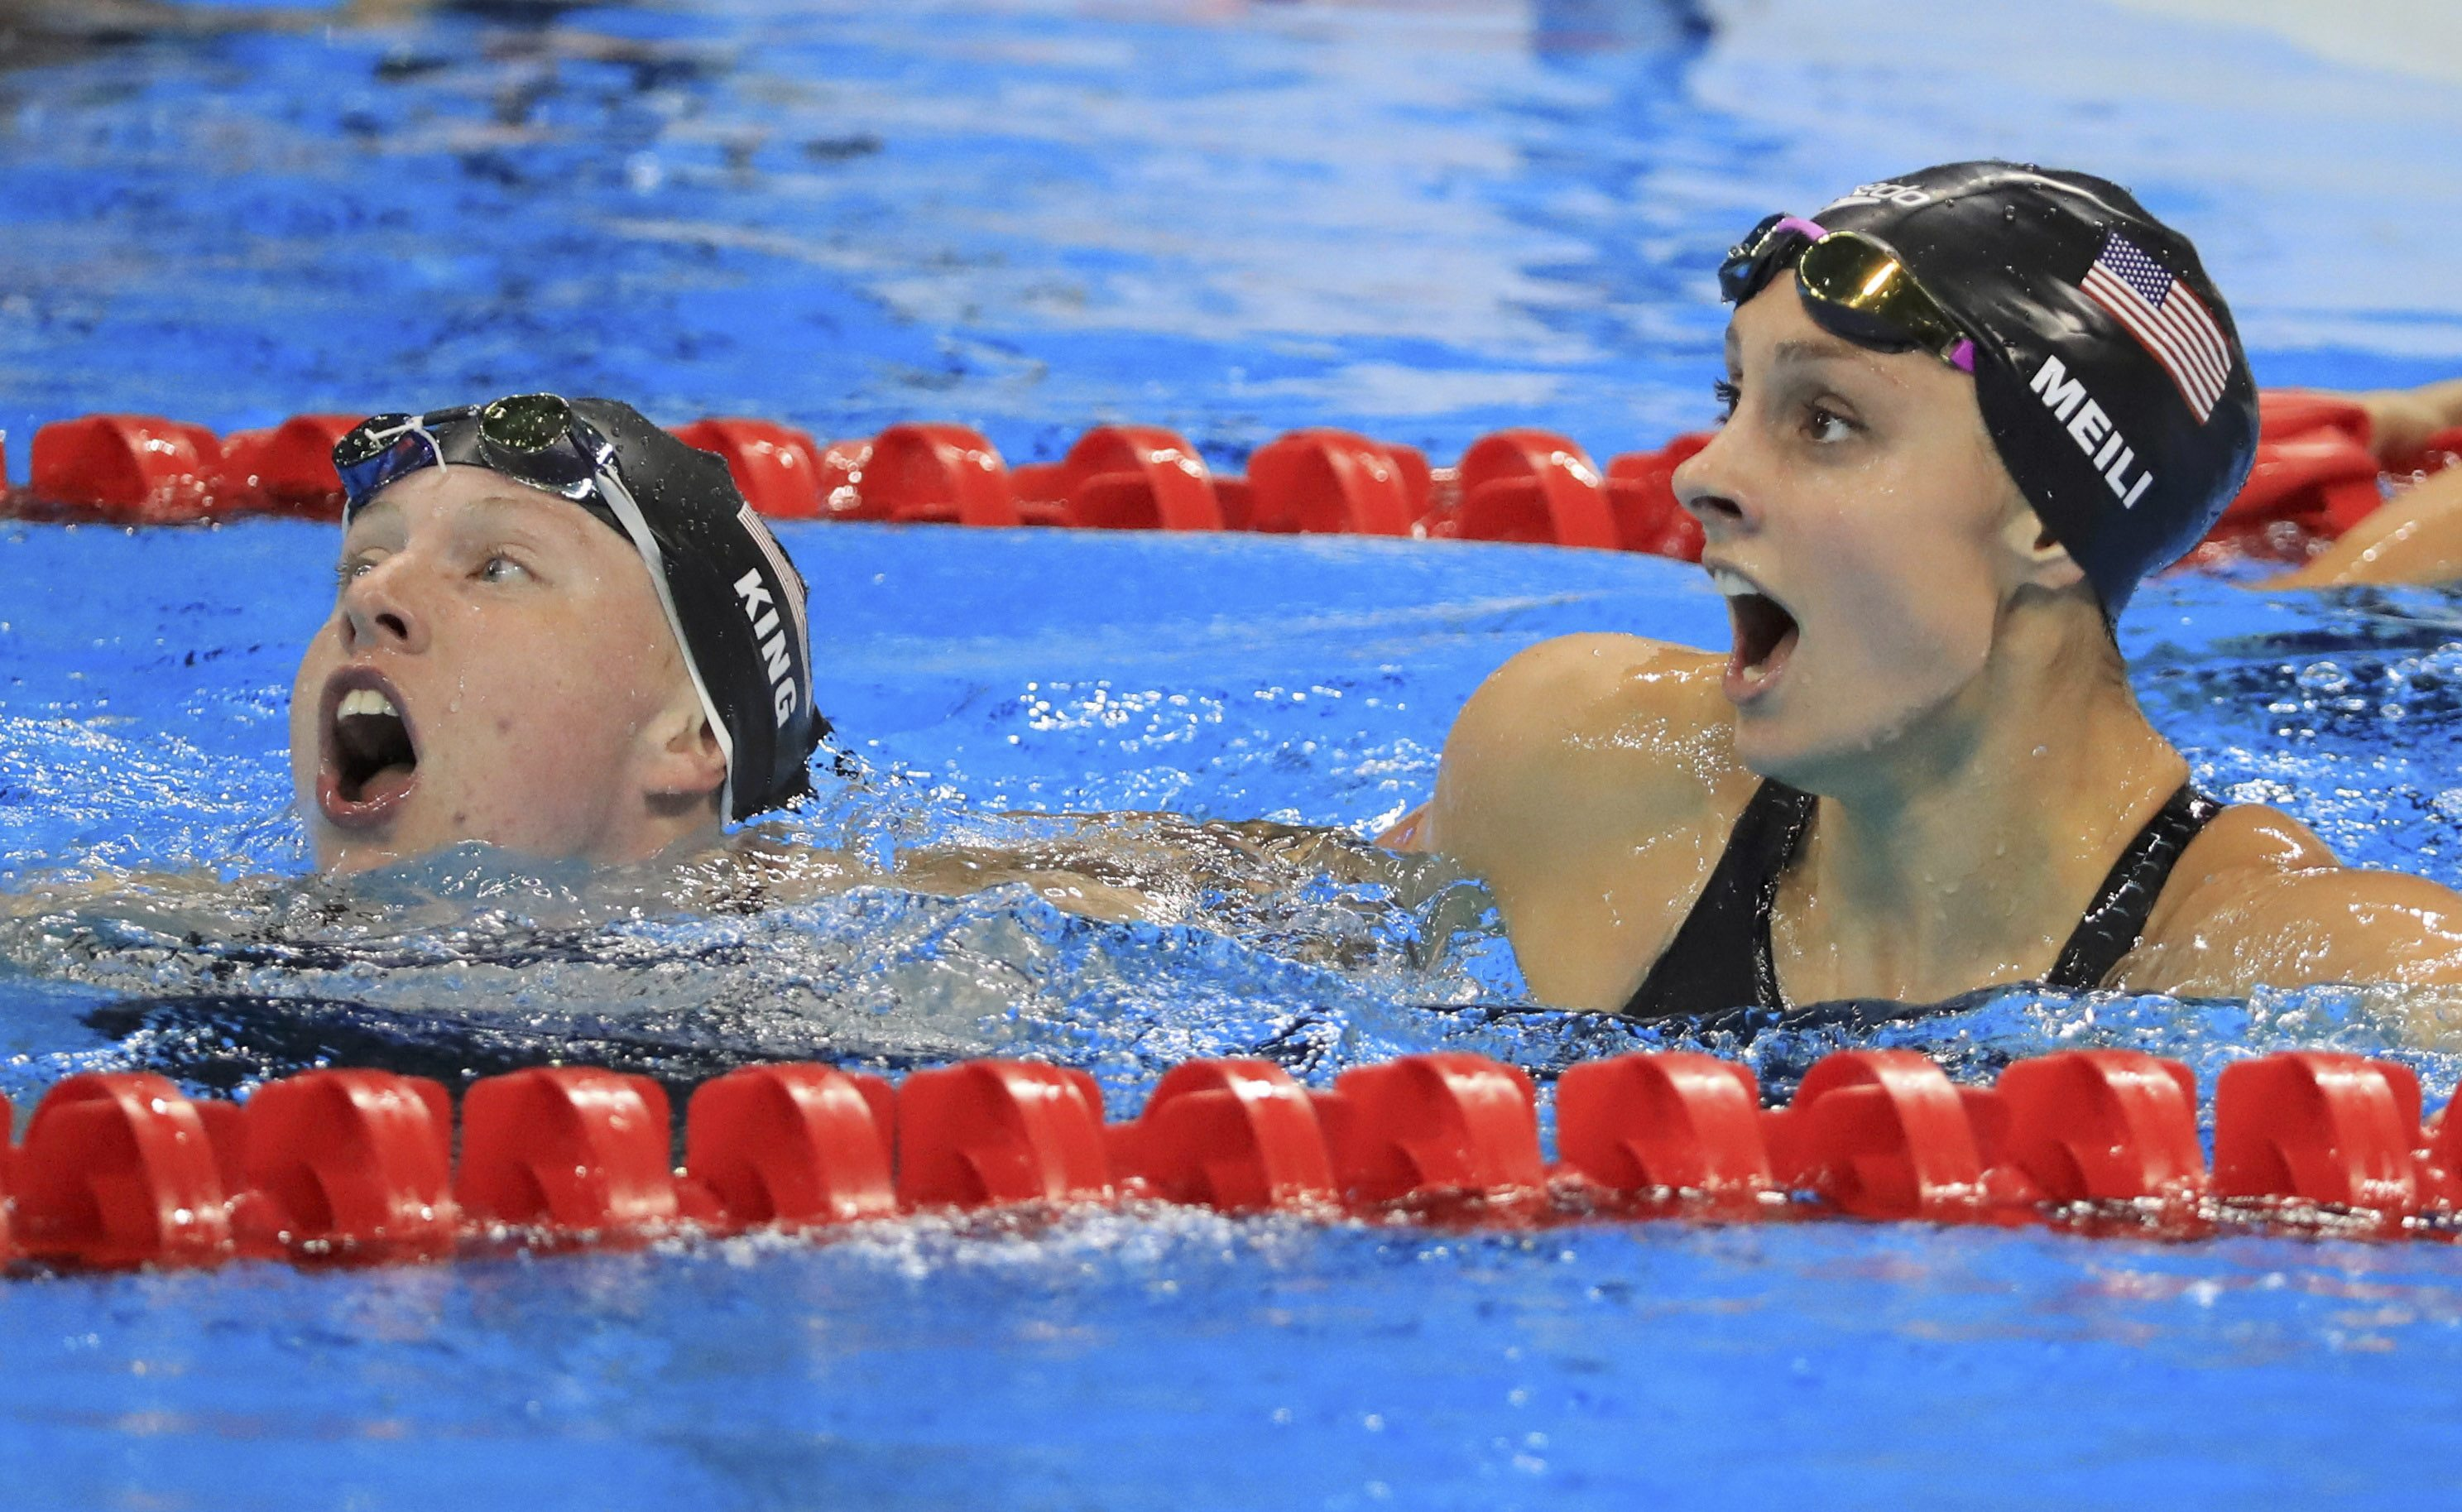 Swimming – Women's 100m Breaststroke Final